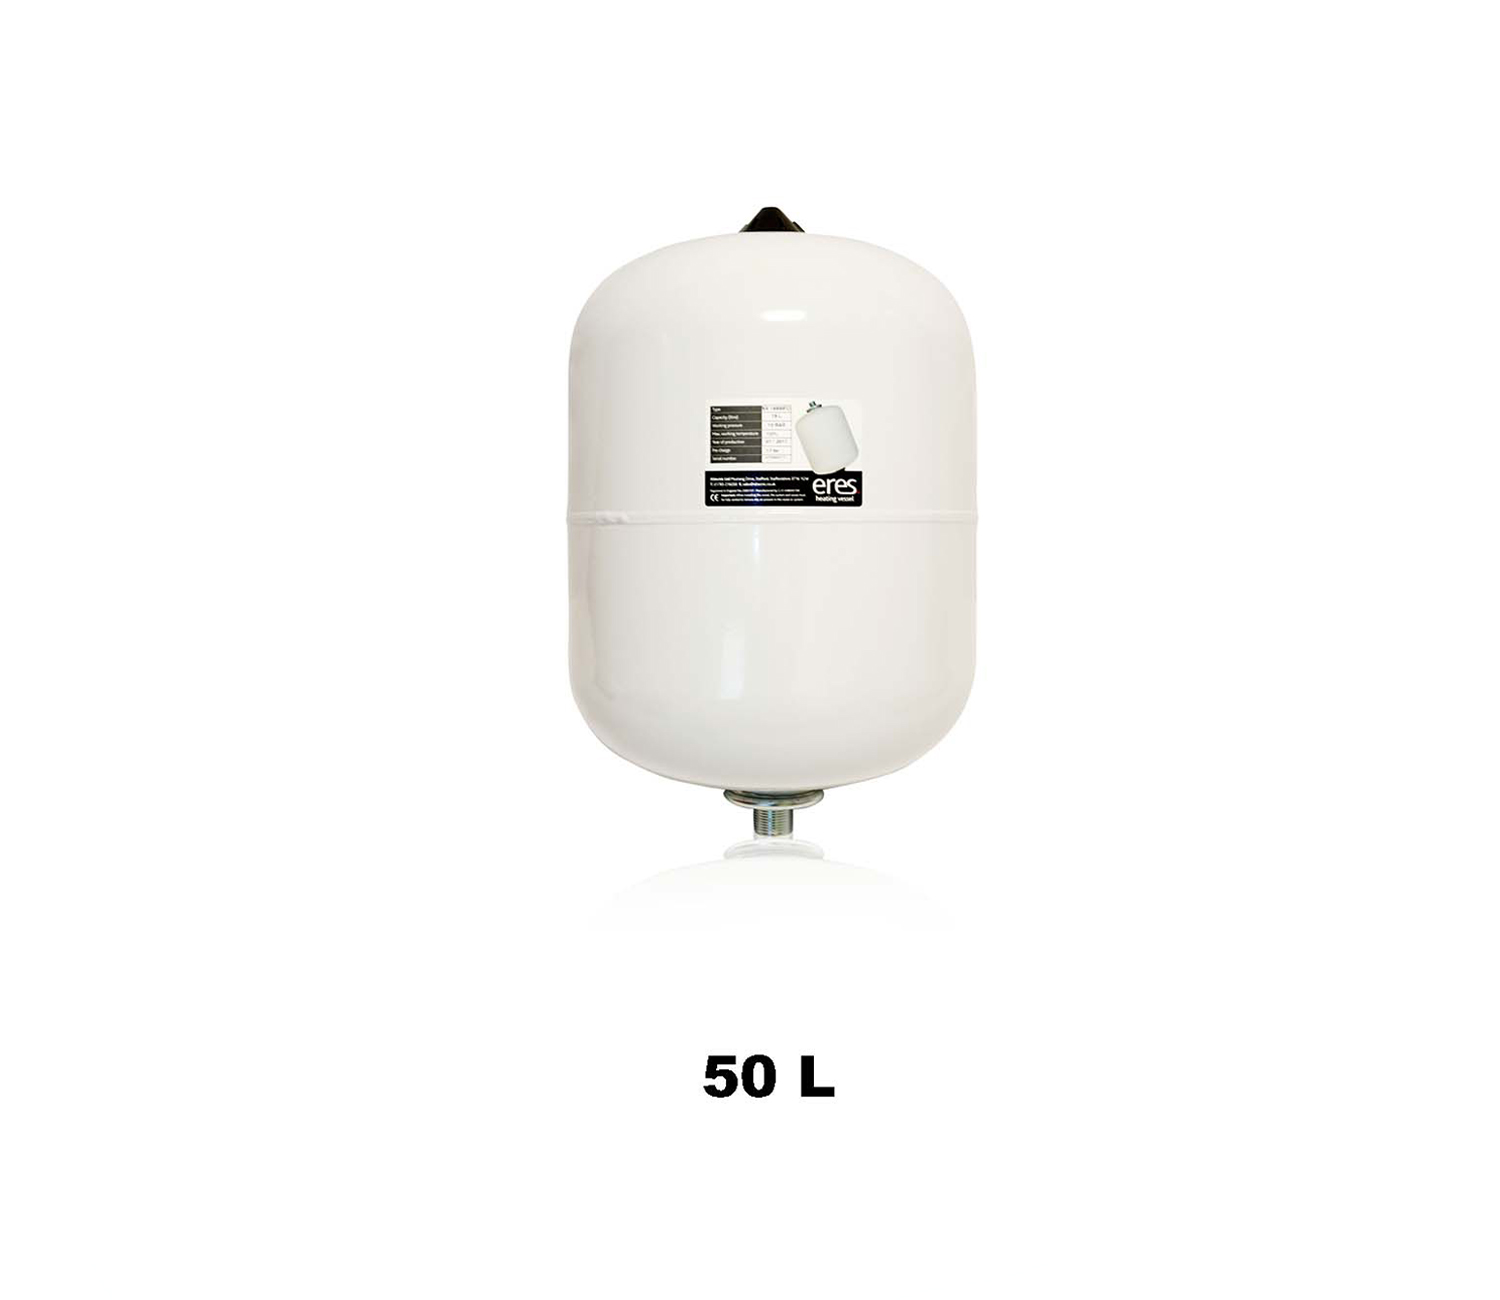 Solar expansion Vessel 50 L high temp